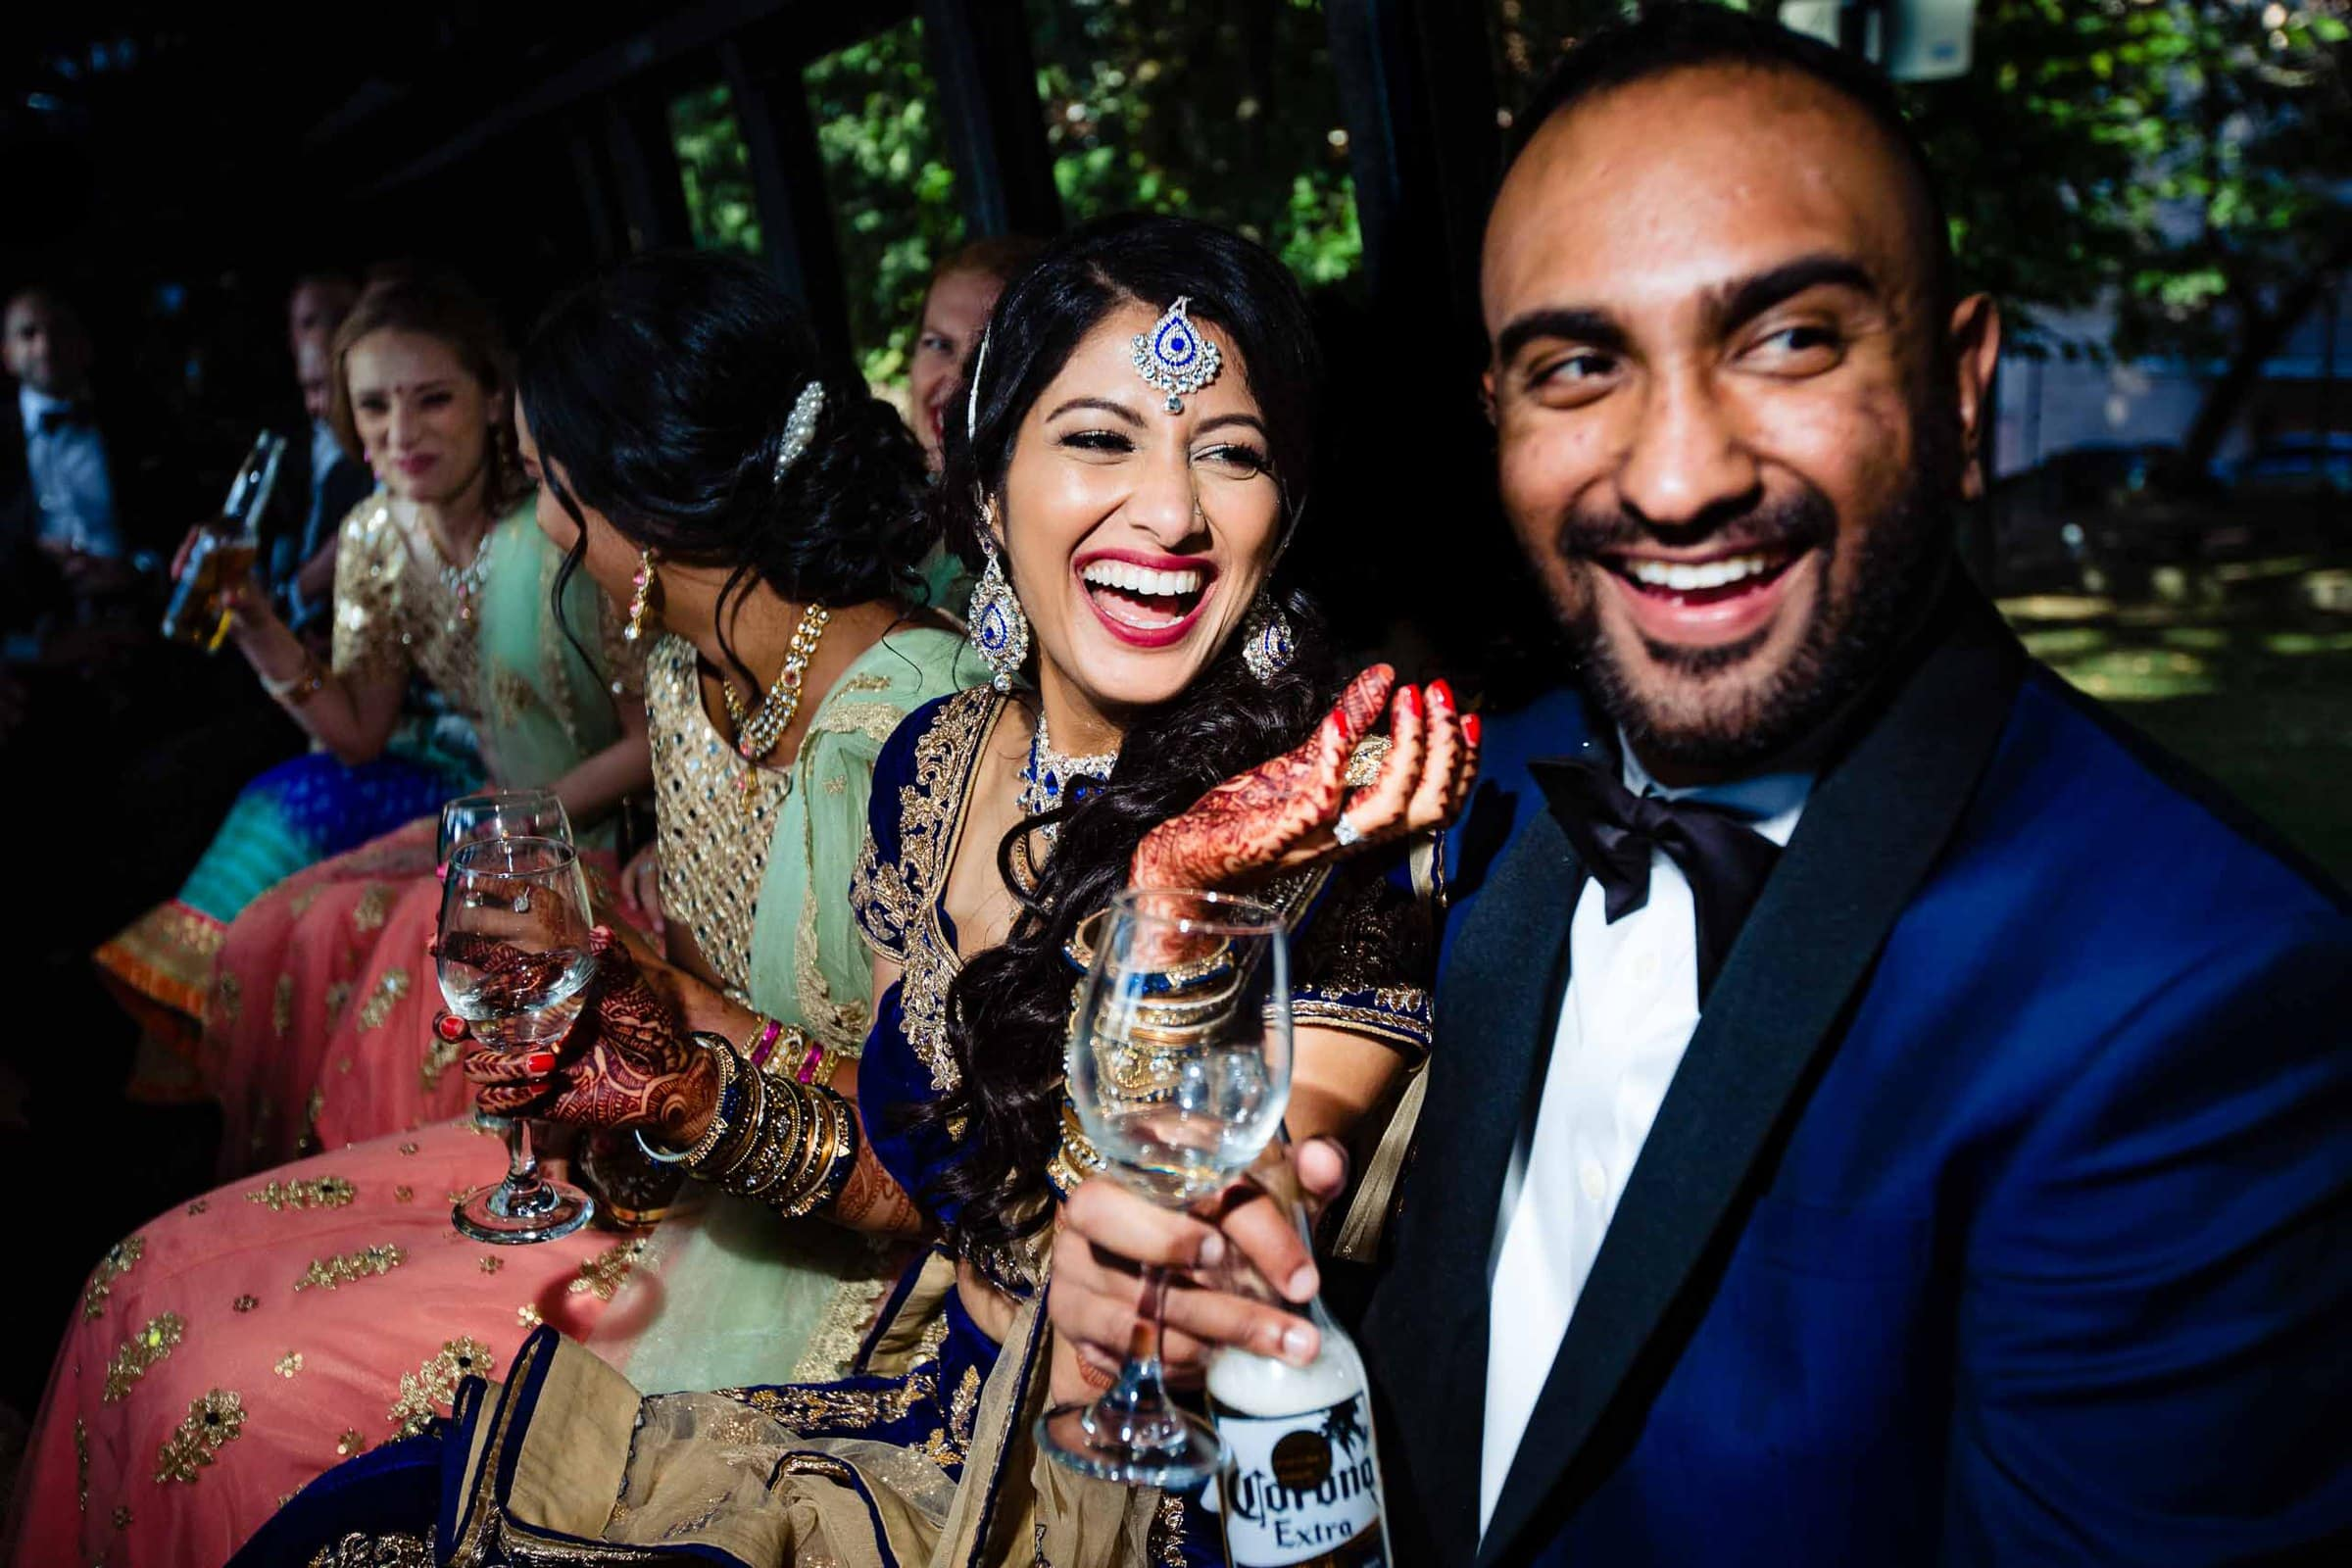 Fun and laughter of an India bride and groom on their way to their Portland Art museum wedding.